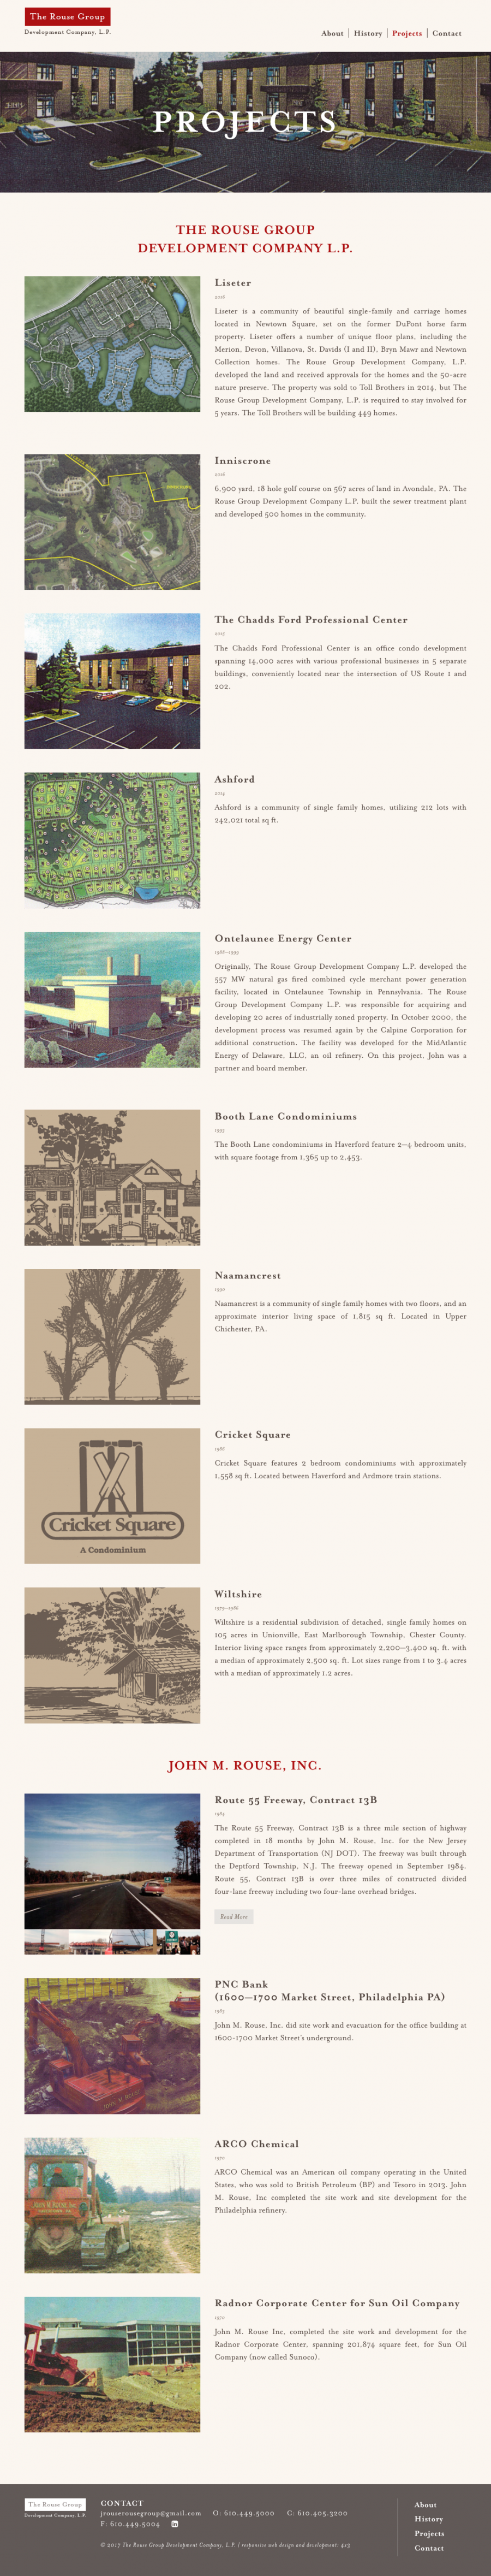 The Rouse Group, completed projects page